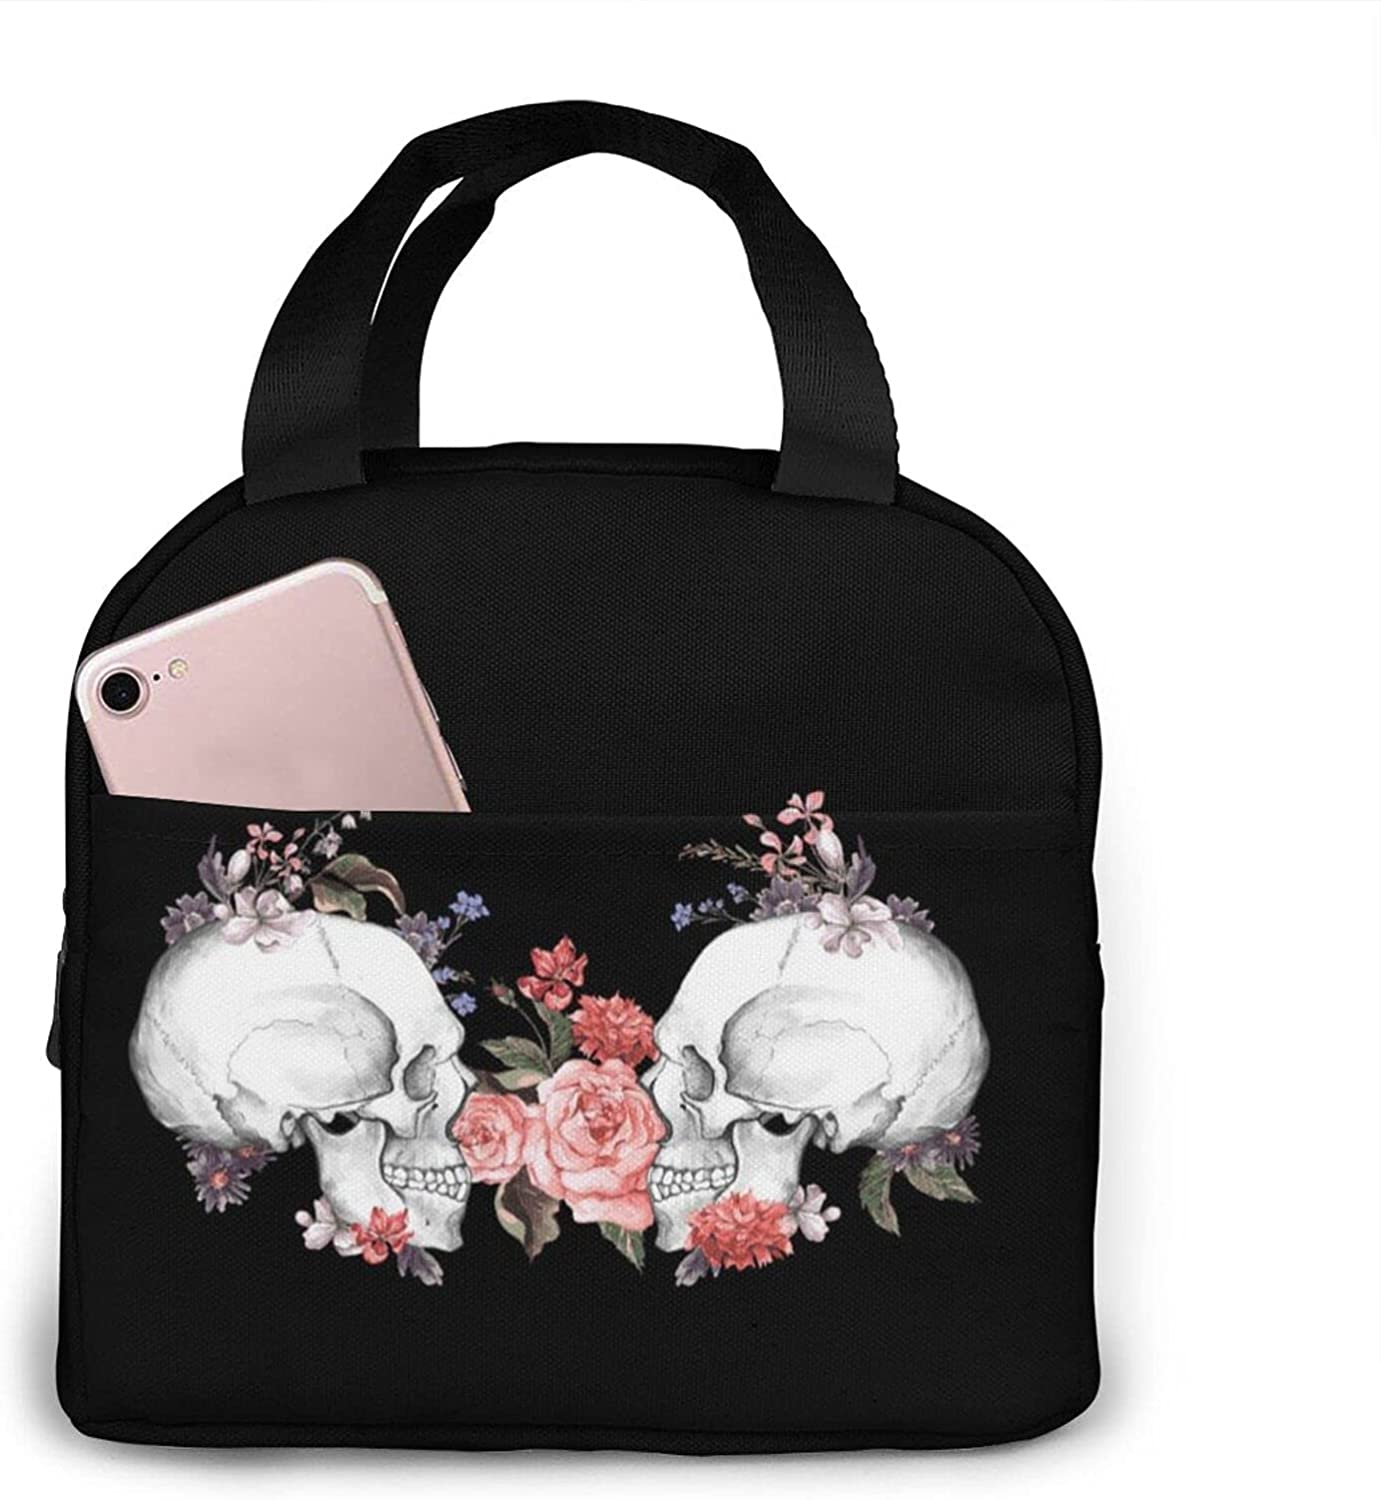 Day of the Dead Lunch Bag Double-Layer Insulated Lunch Box Bag Waterproof And Leak-Proof Ice Bag Picnic Bag Reusable Men And Women Travel Portable Storage Bag